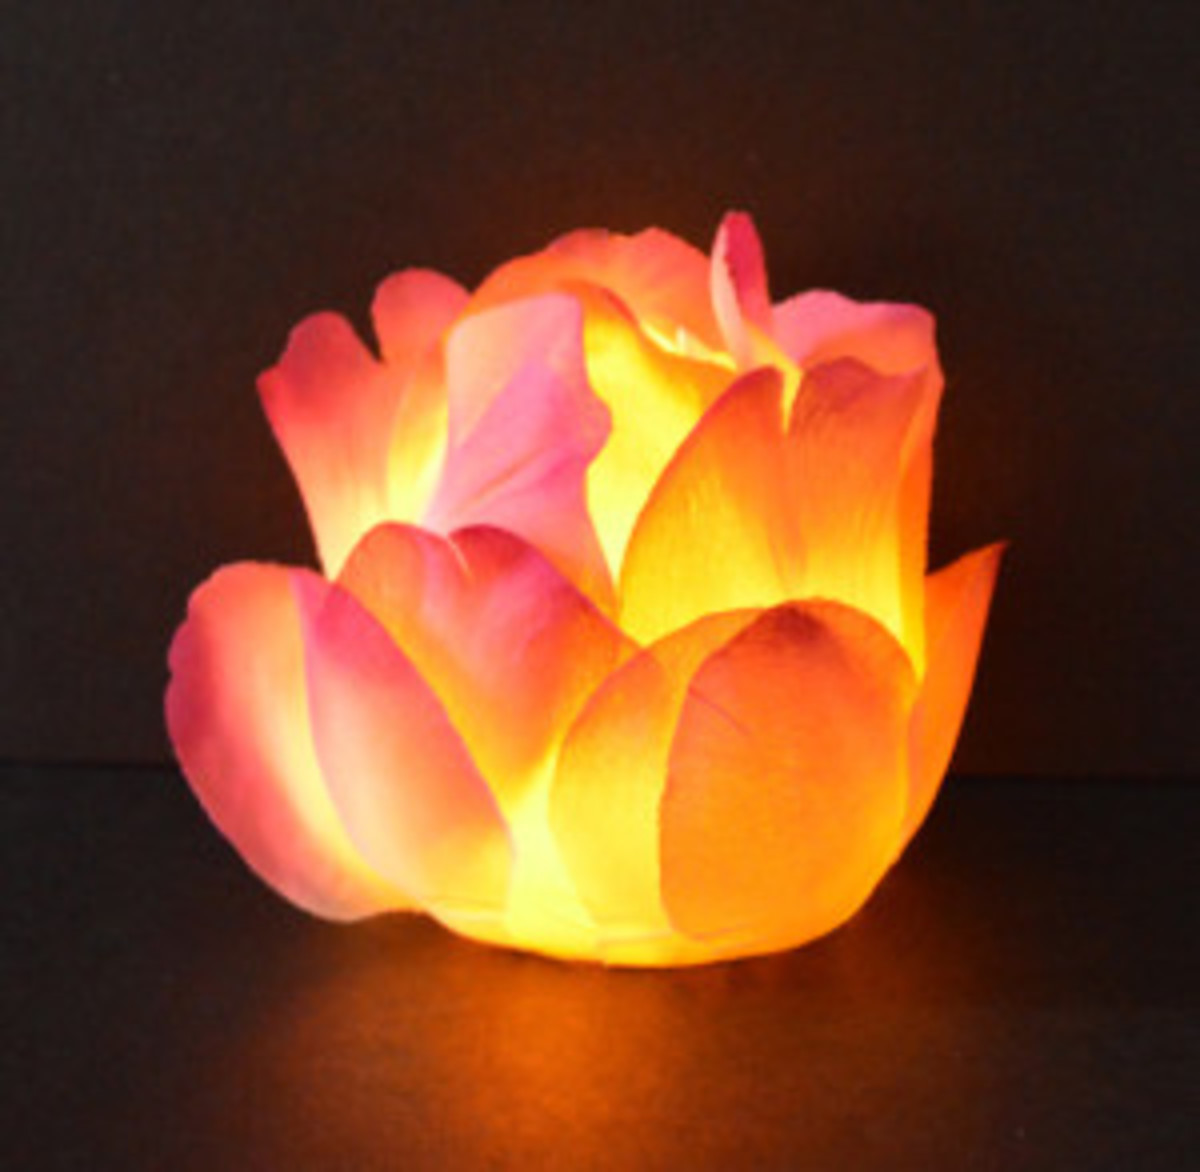 With some silk roses you can easily make some delightful rose candle votive candle holder